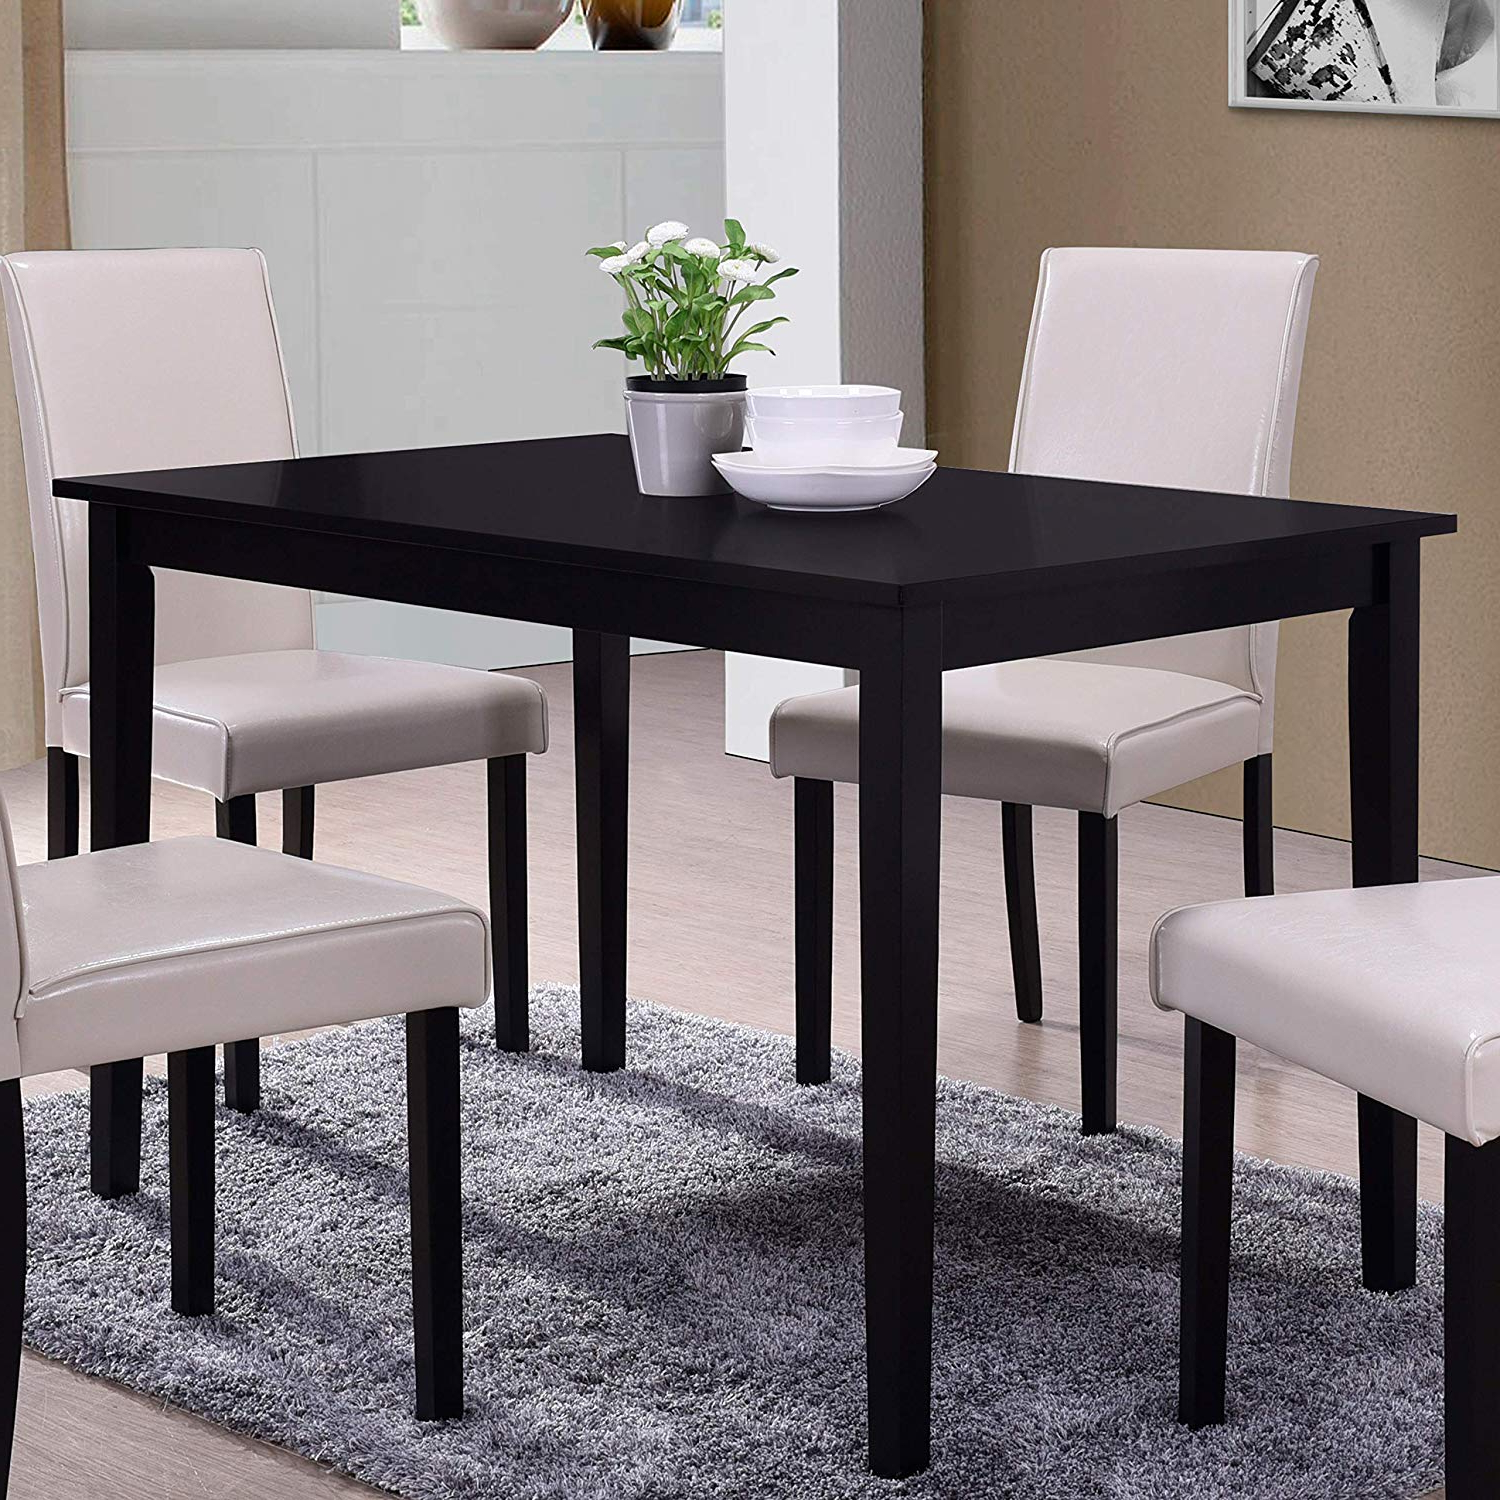 Widely Used Amazon – Best Master Furniture Melissa Transitional Regarding Transitional Rectangular Dining Tables (View 21 of 21)